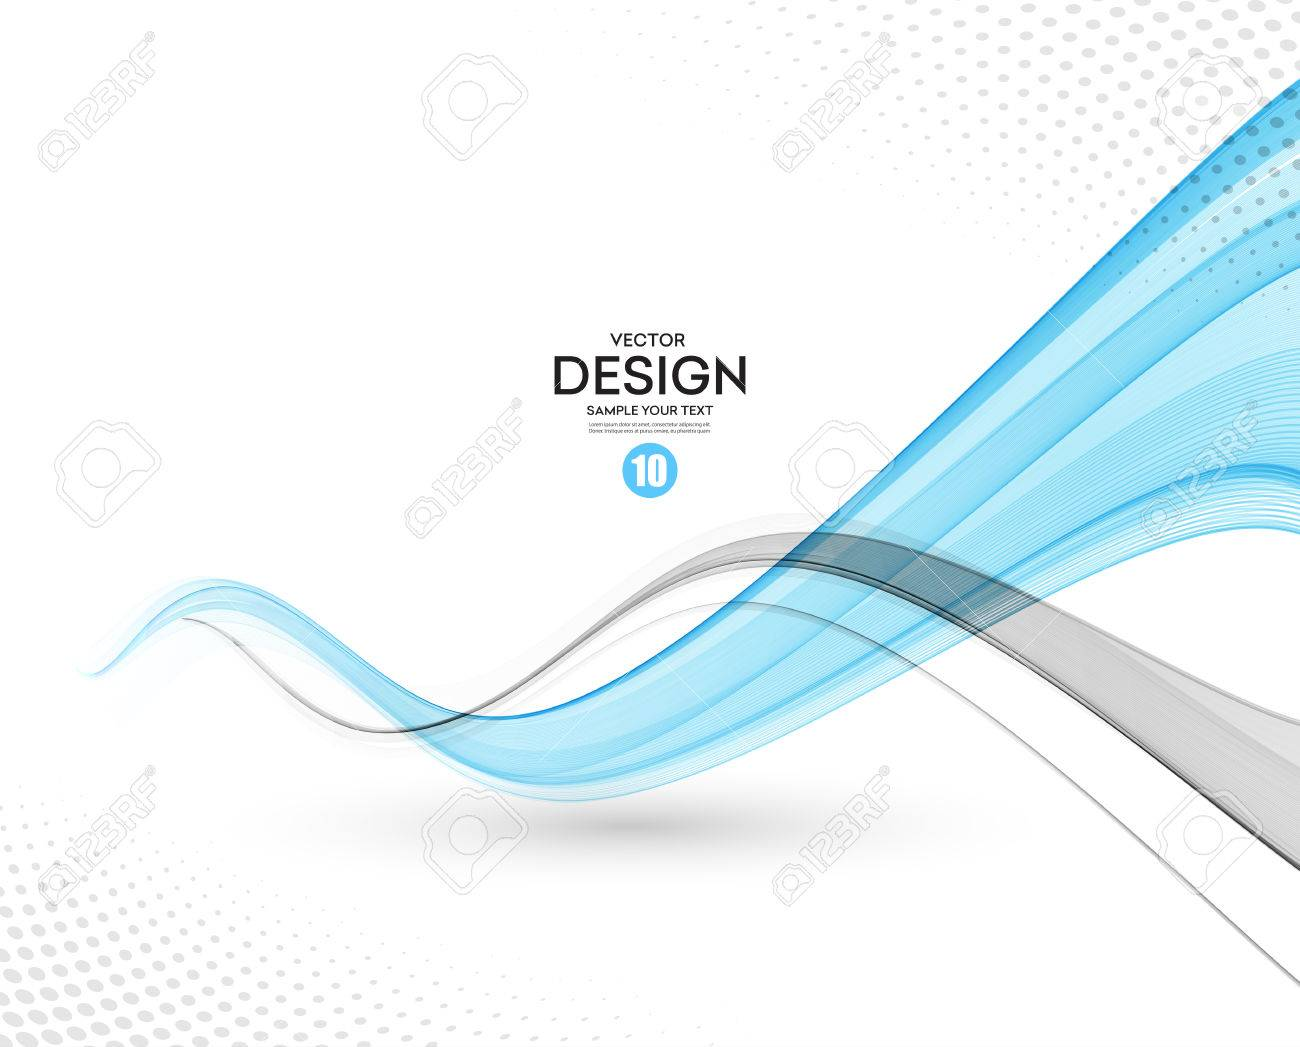 Abstract vector background, gray and blue waved lines for brochure, website, flyer design. illustration - 55560454